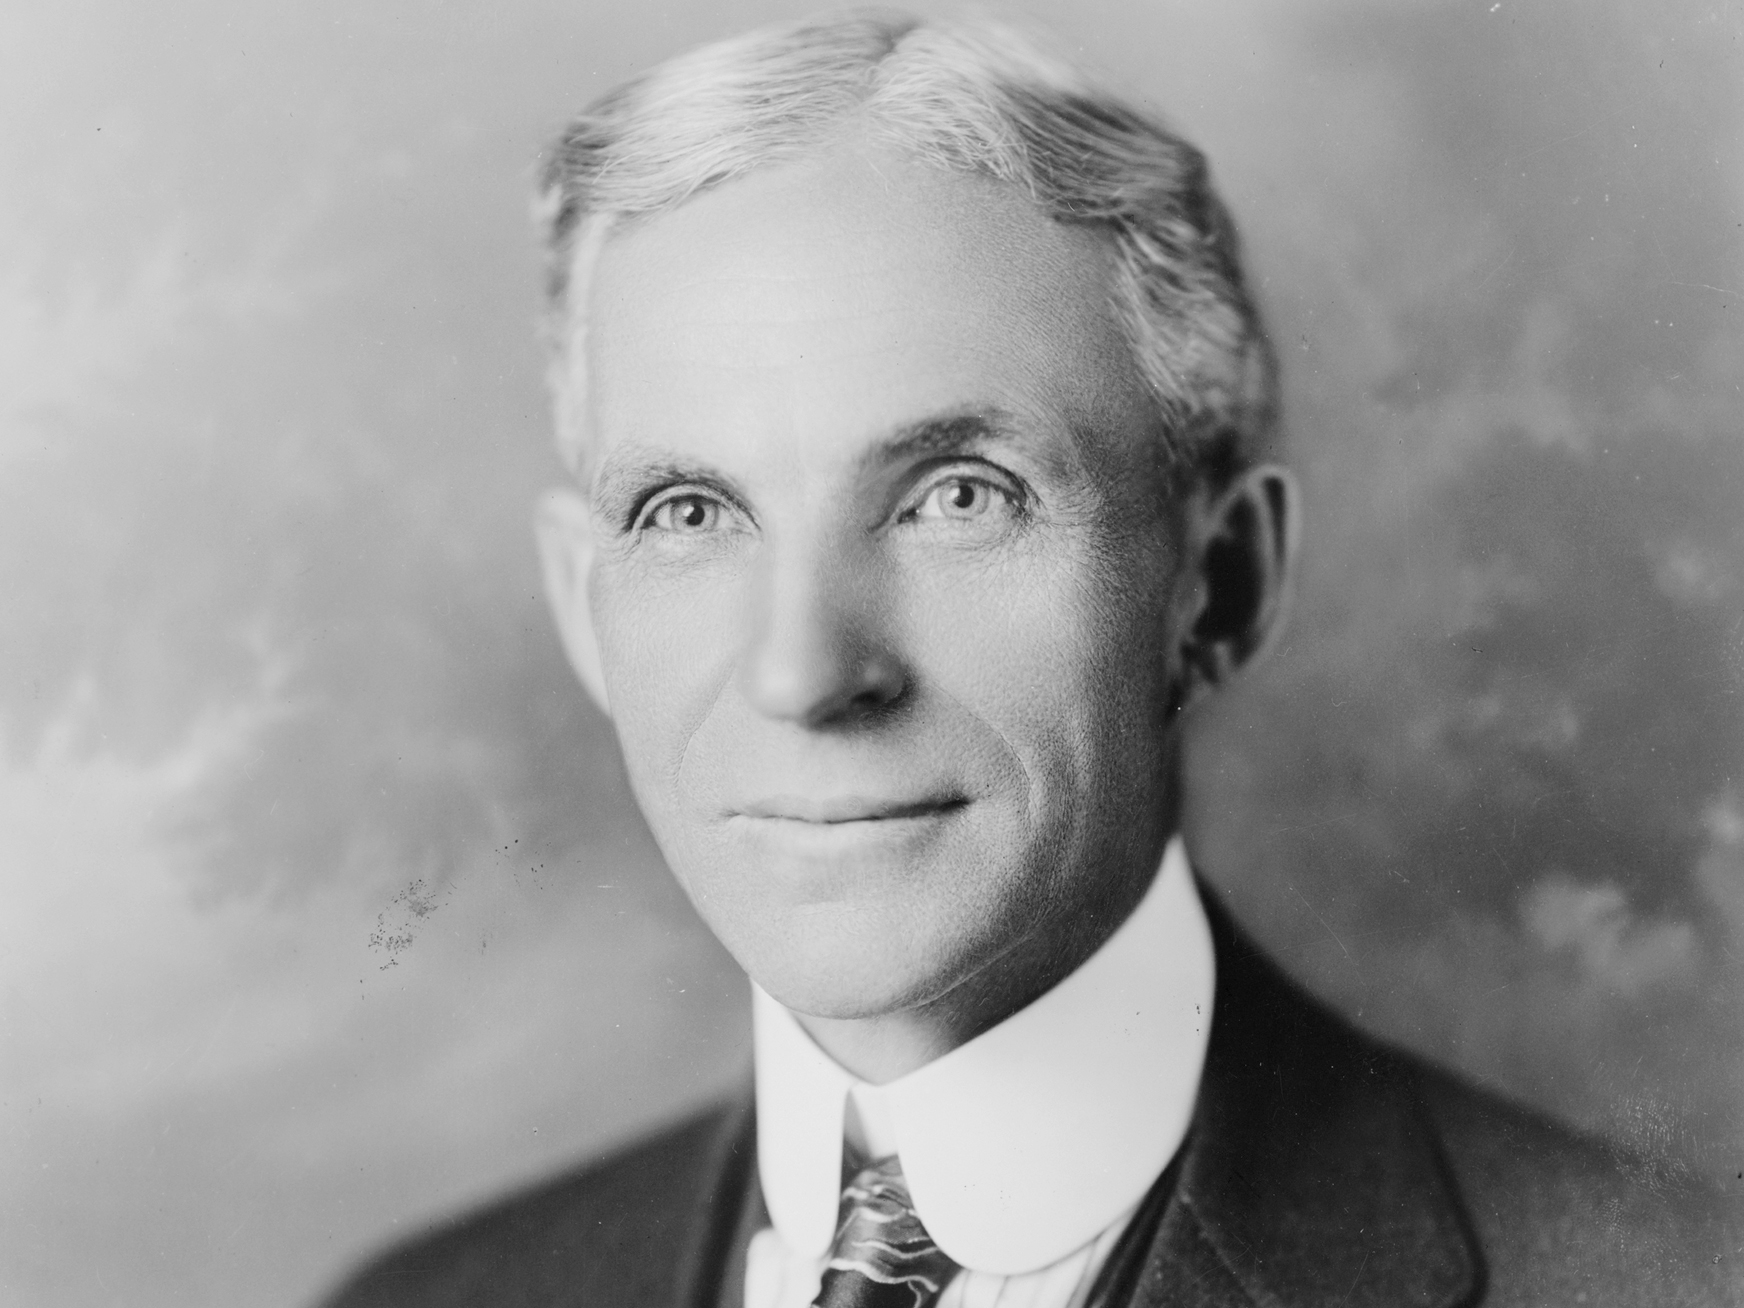 Quotes From Henry Ford Founder Of Ford Motor Company